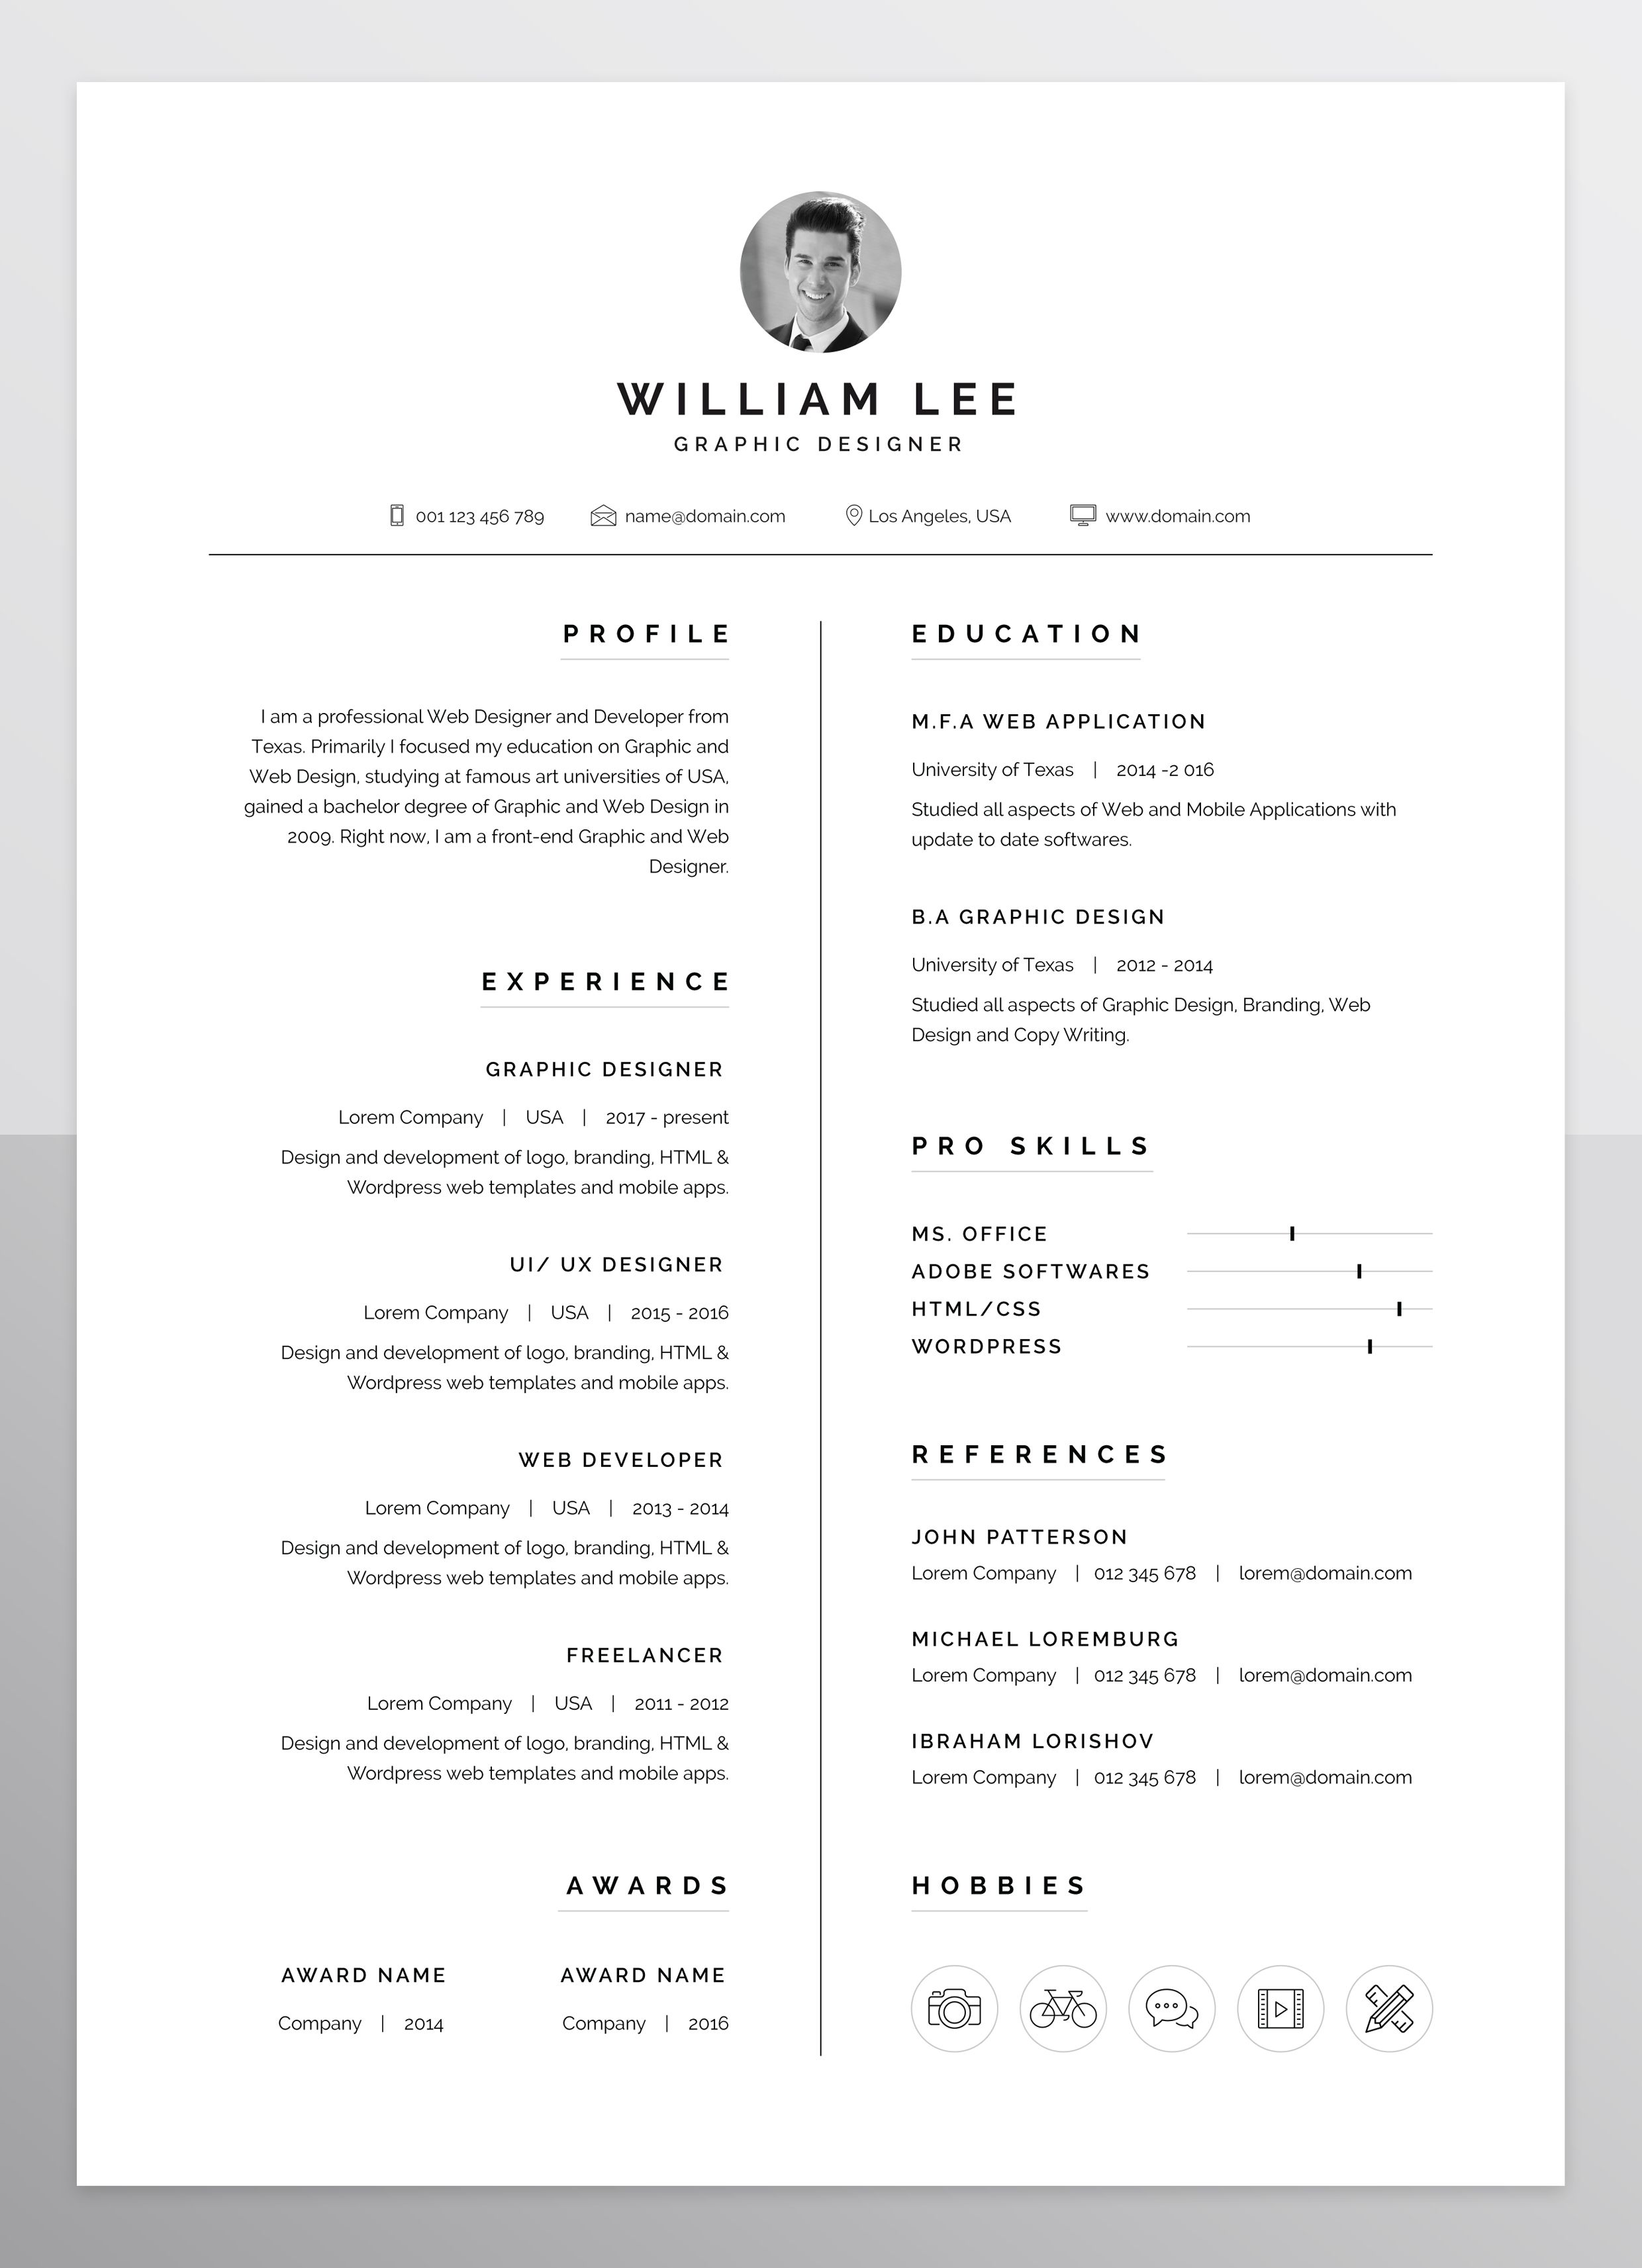 a simple, clean, minimal and professional design of Resume/CV ...